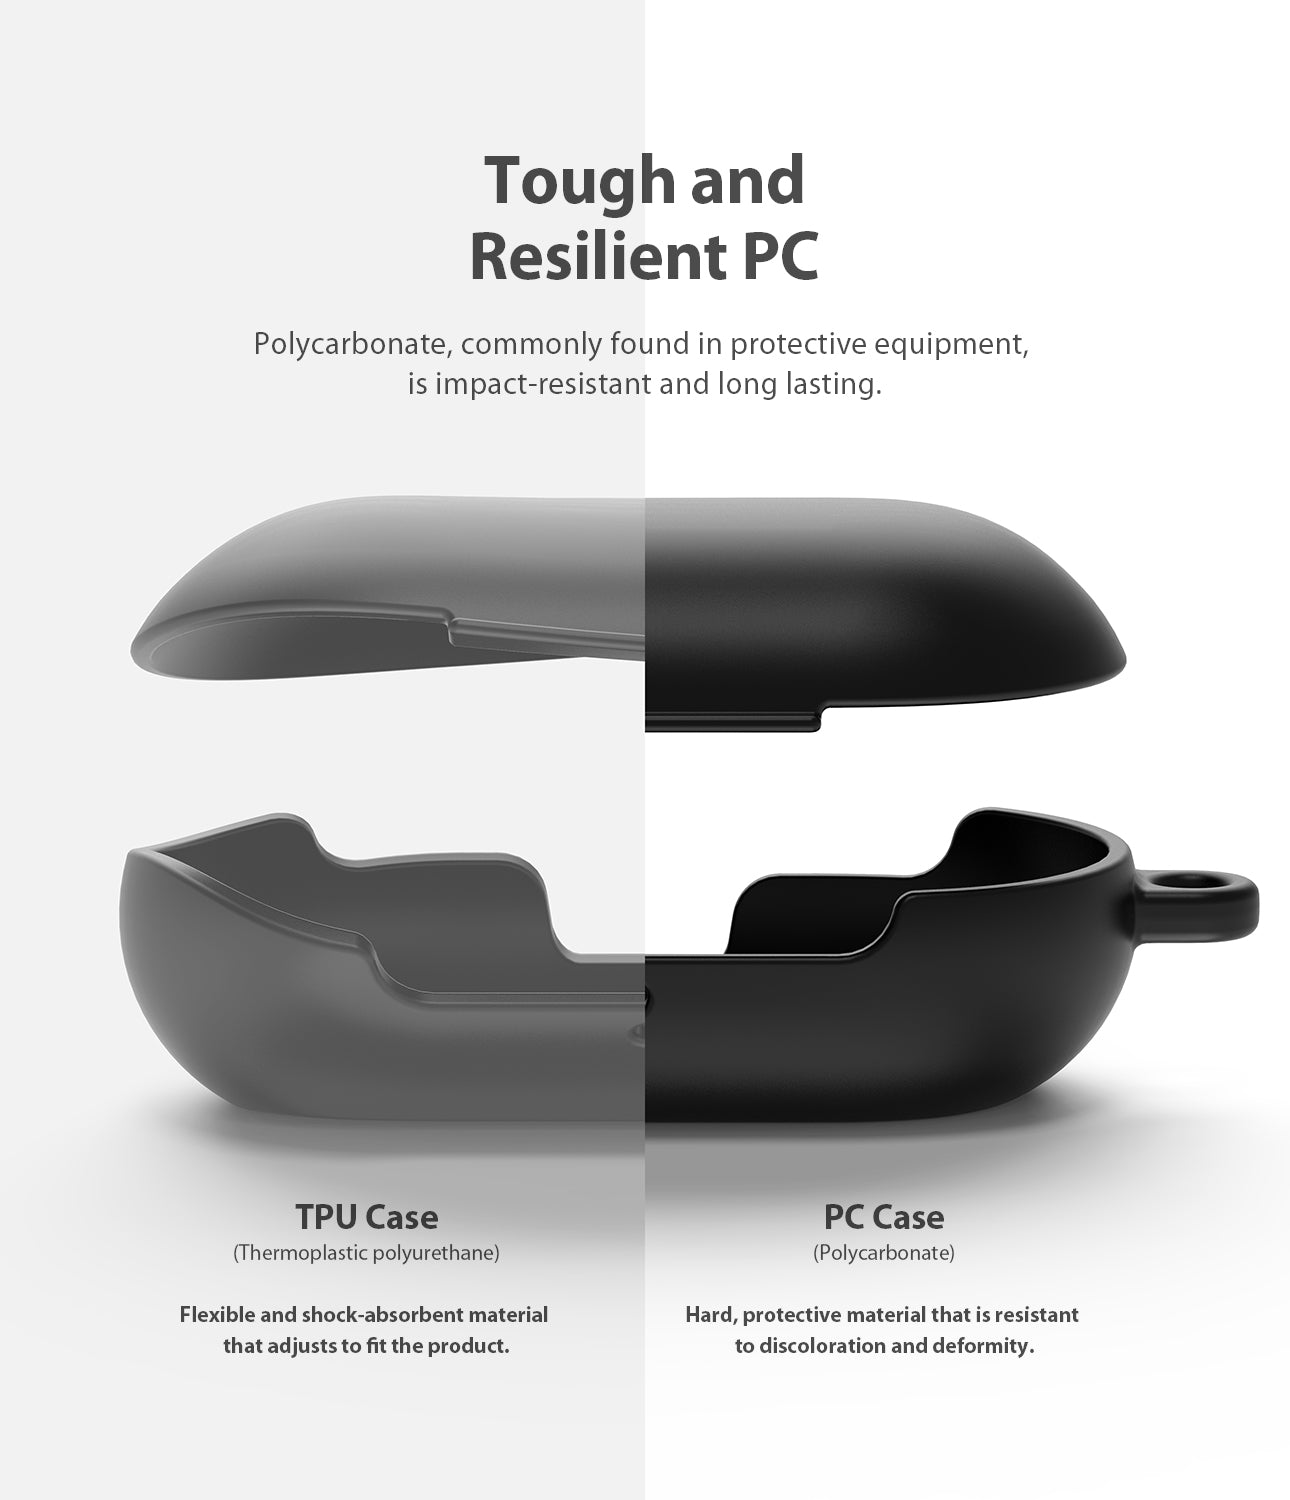 ringke galaxy buds and buds plus case made of tough and resilient pc with soft feeling coating with carabiner